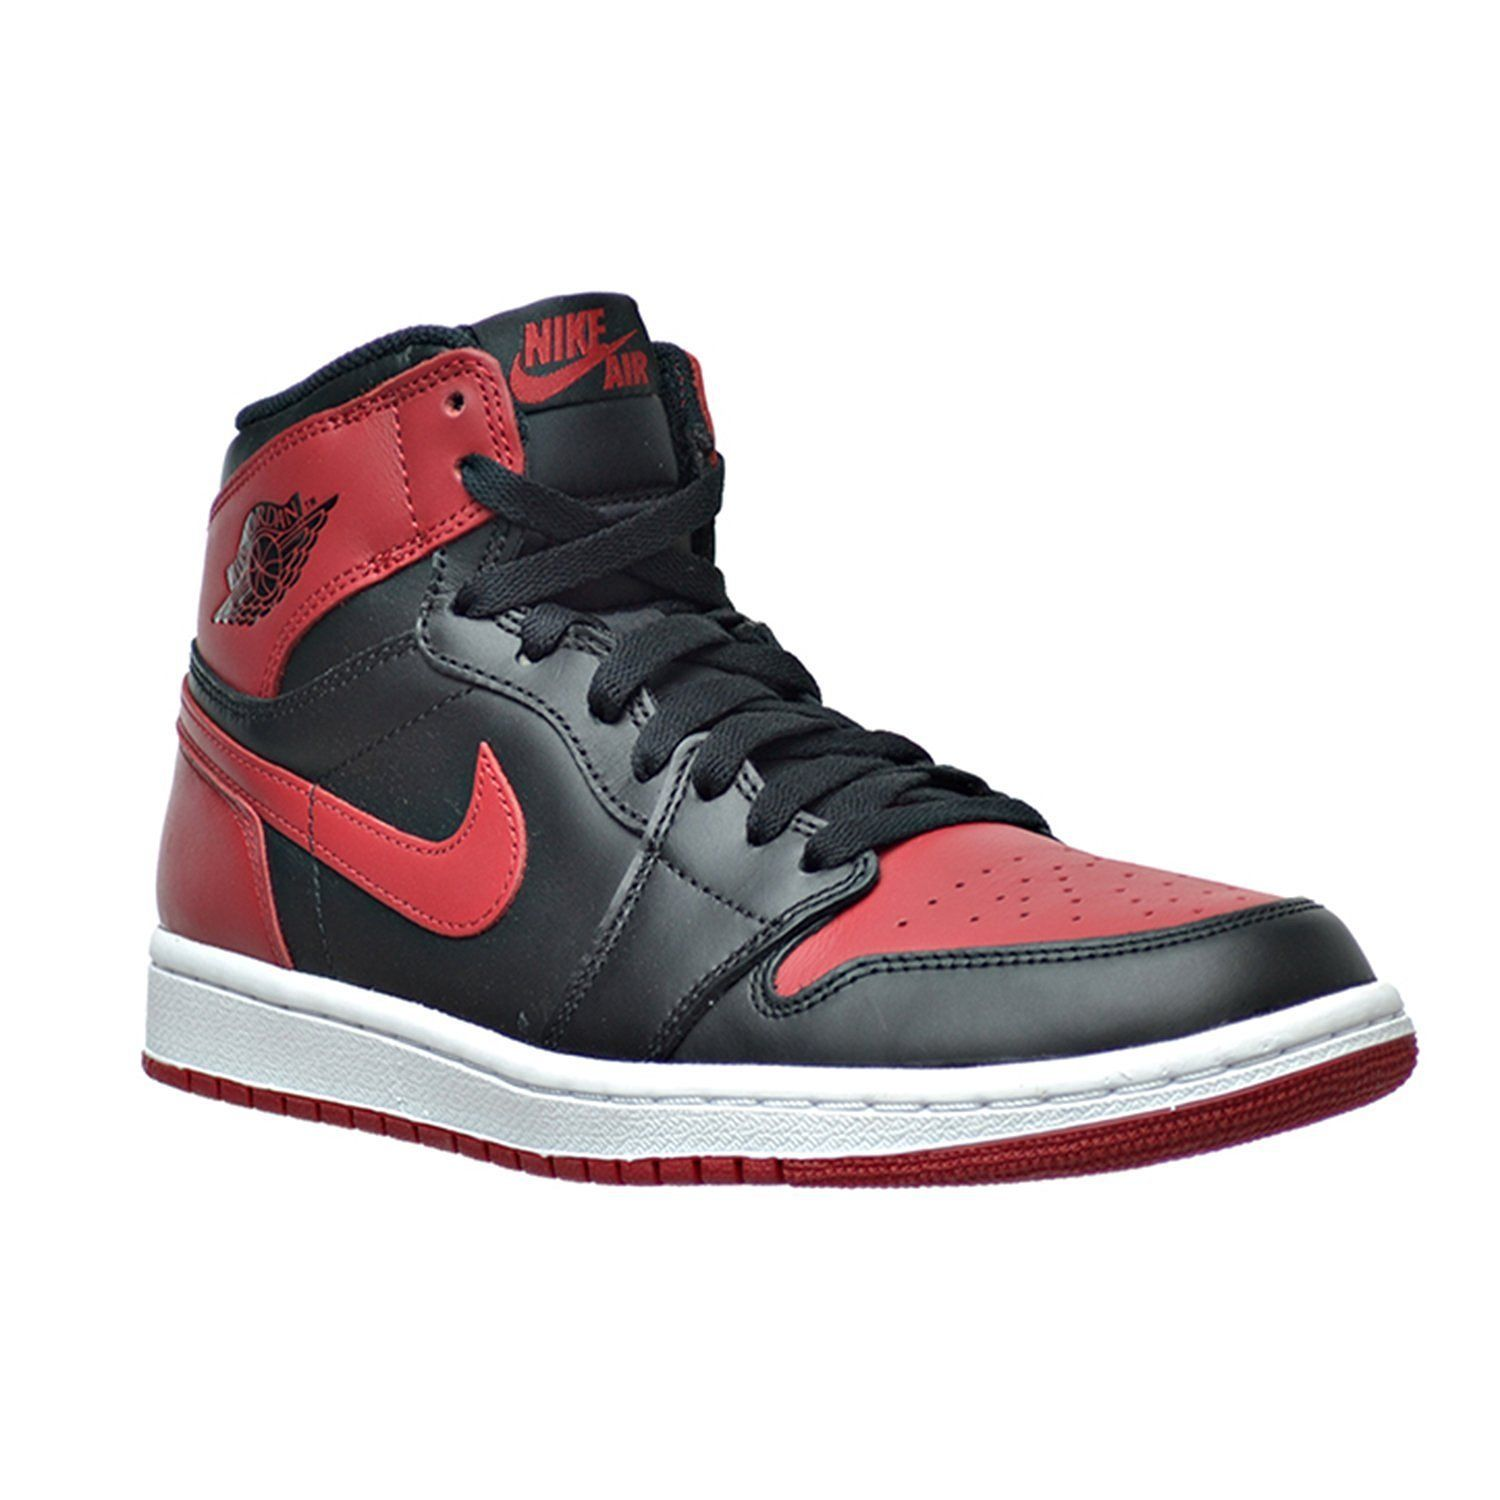 Nike Herren Air Jordan 1 Retro High Og Basketball Turnschuhe Amazon